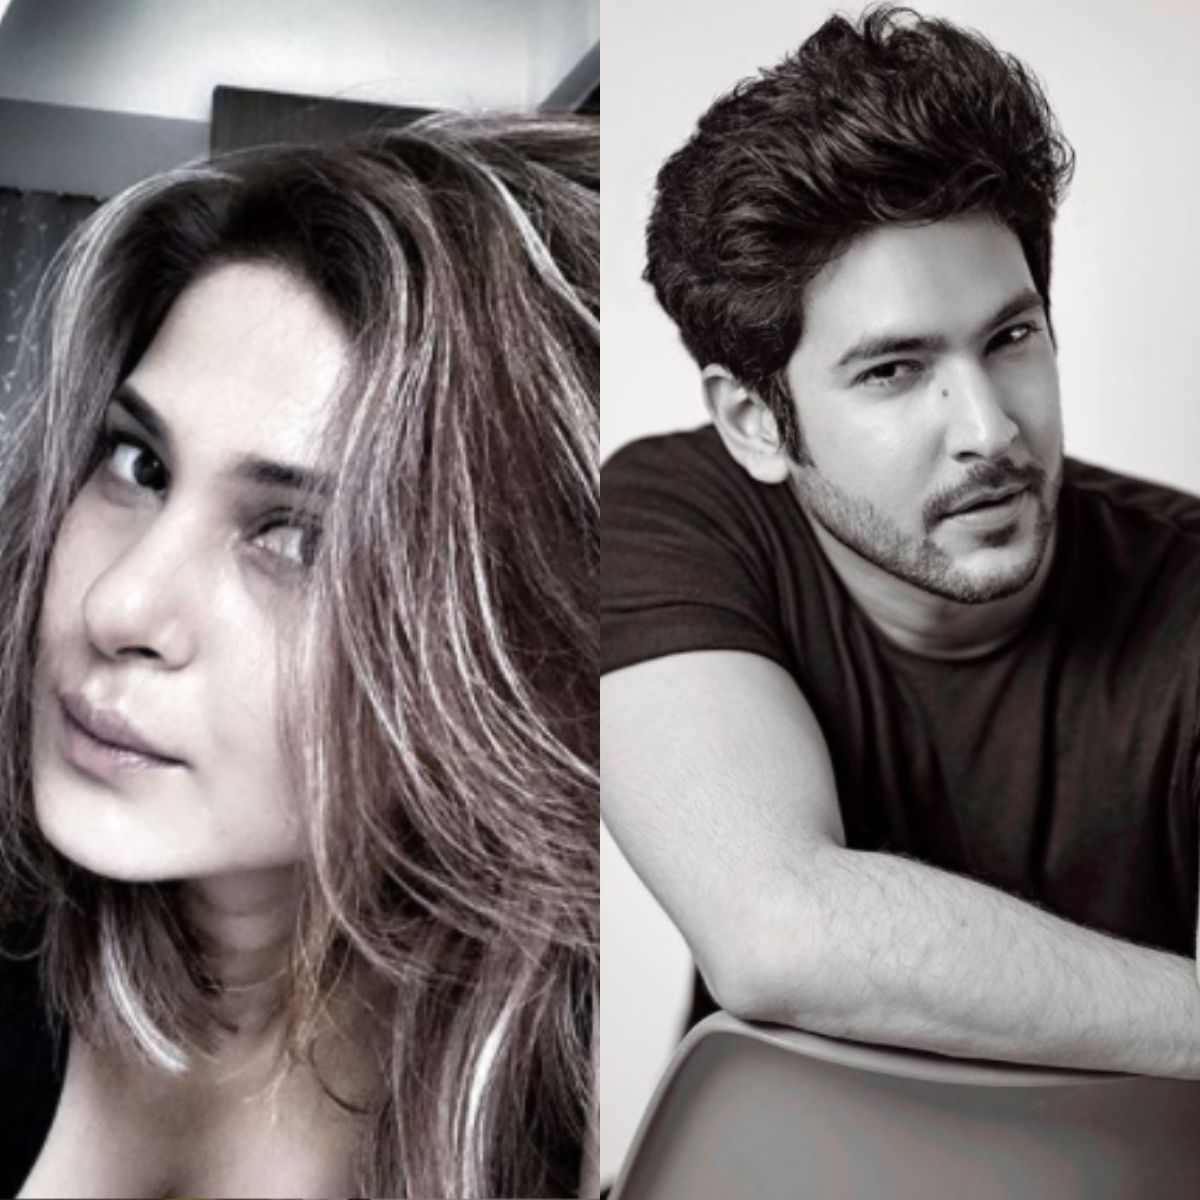 When Jennifer Winget Stirred Up A Storm With A Pretty Pic Beyhadh 2 S Shivin Narang Drooled Over His Maya In 2020 Jennifer Winget New Gossip Jennifer